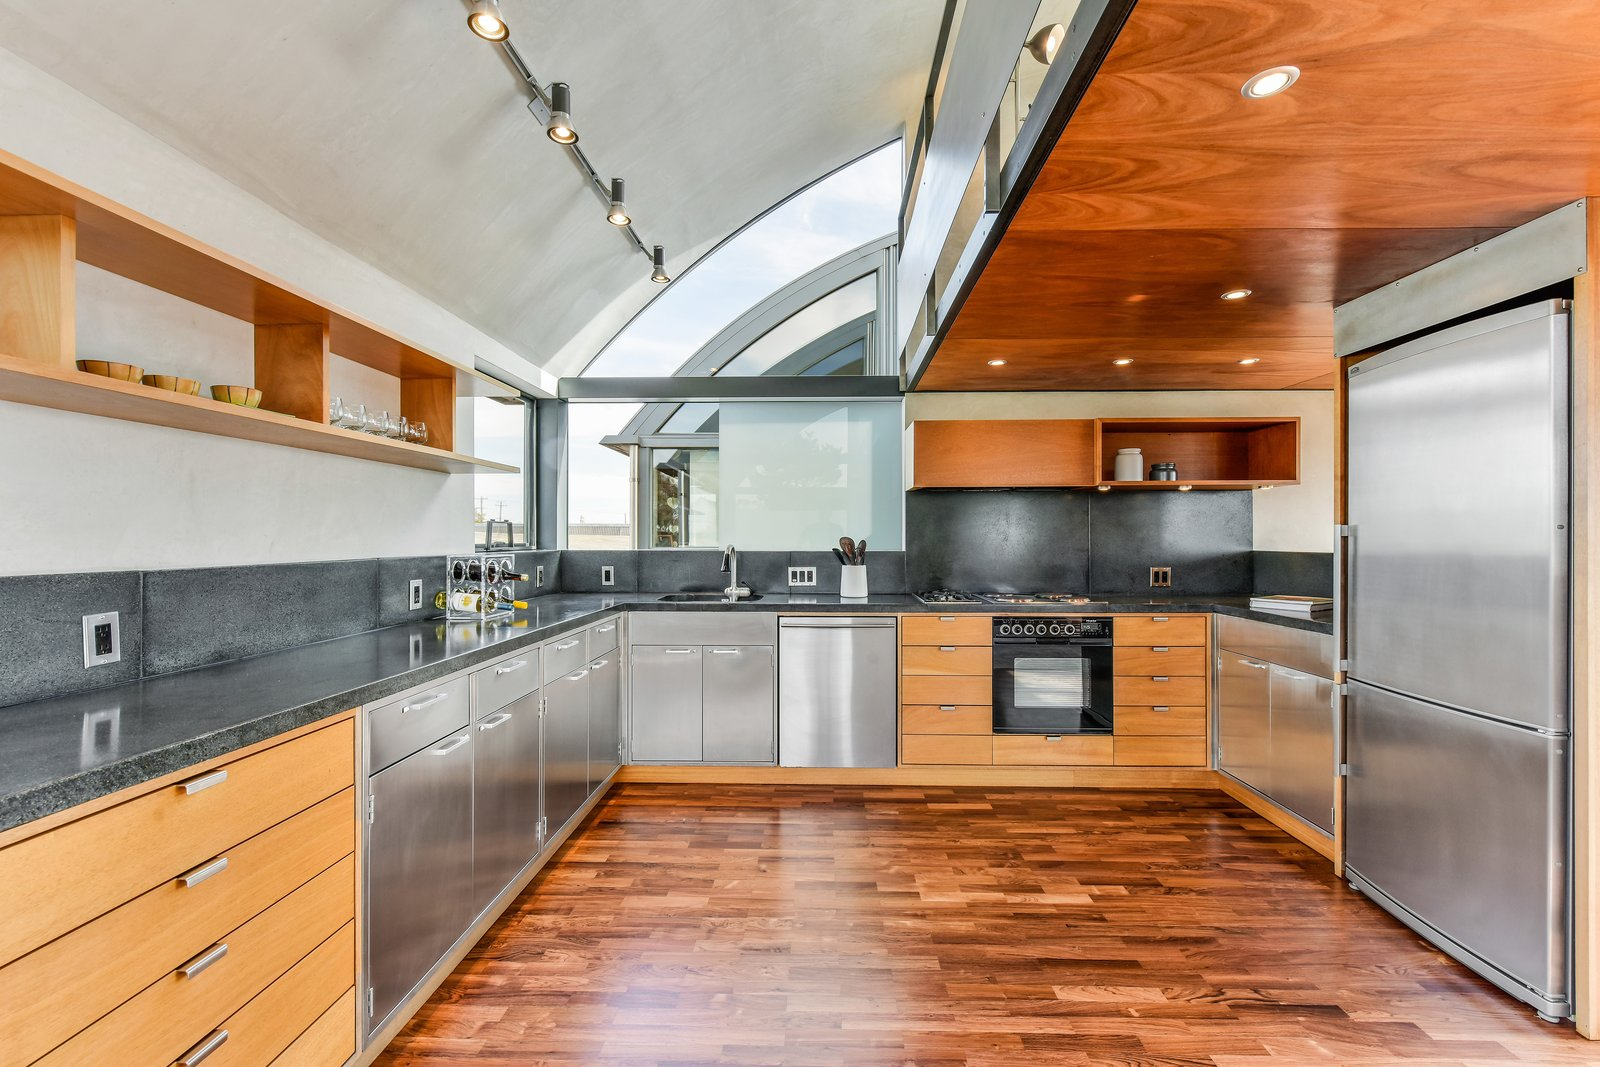 Kitchen, Medium Hardwood, Concrete, Wood, Concrete, Track, Ceiling, Refrigerator, Wall Oven, Range, Range Hood, Cooktops, Dishwasher, and Drop In Level 3 kitchen  Best Kitchen Concrete Cooktops Ceiling Range Wood Photos from The Rempel Temple